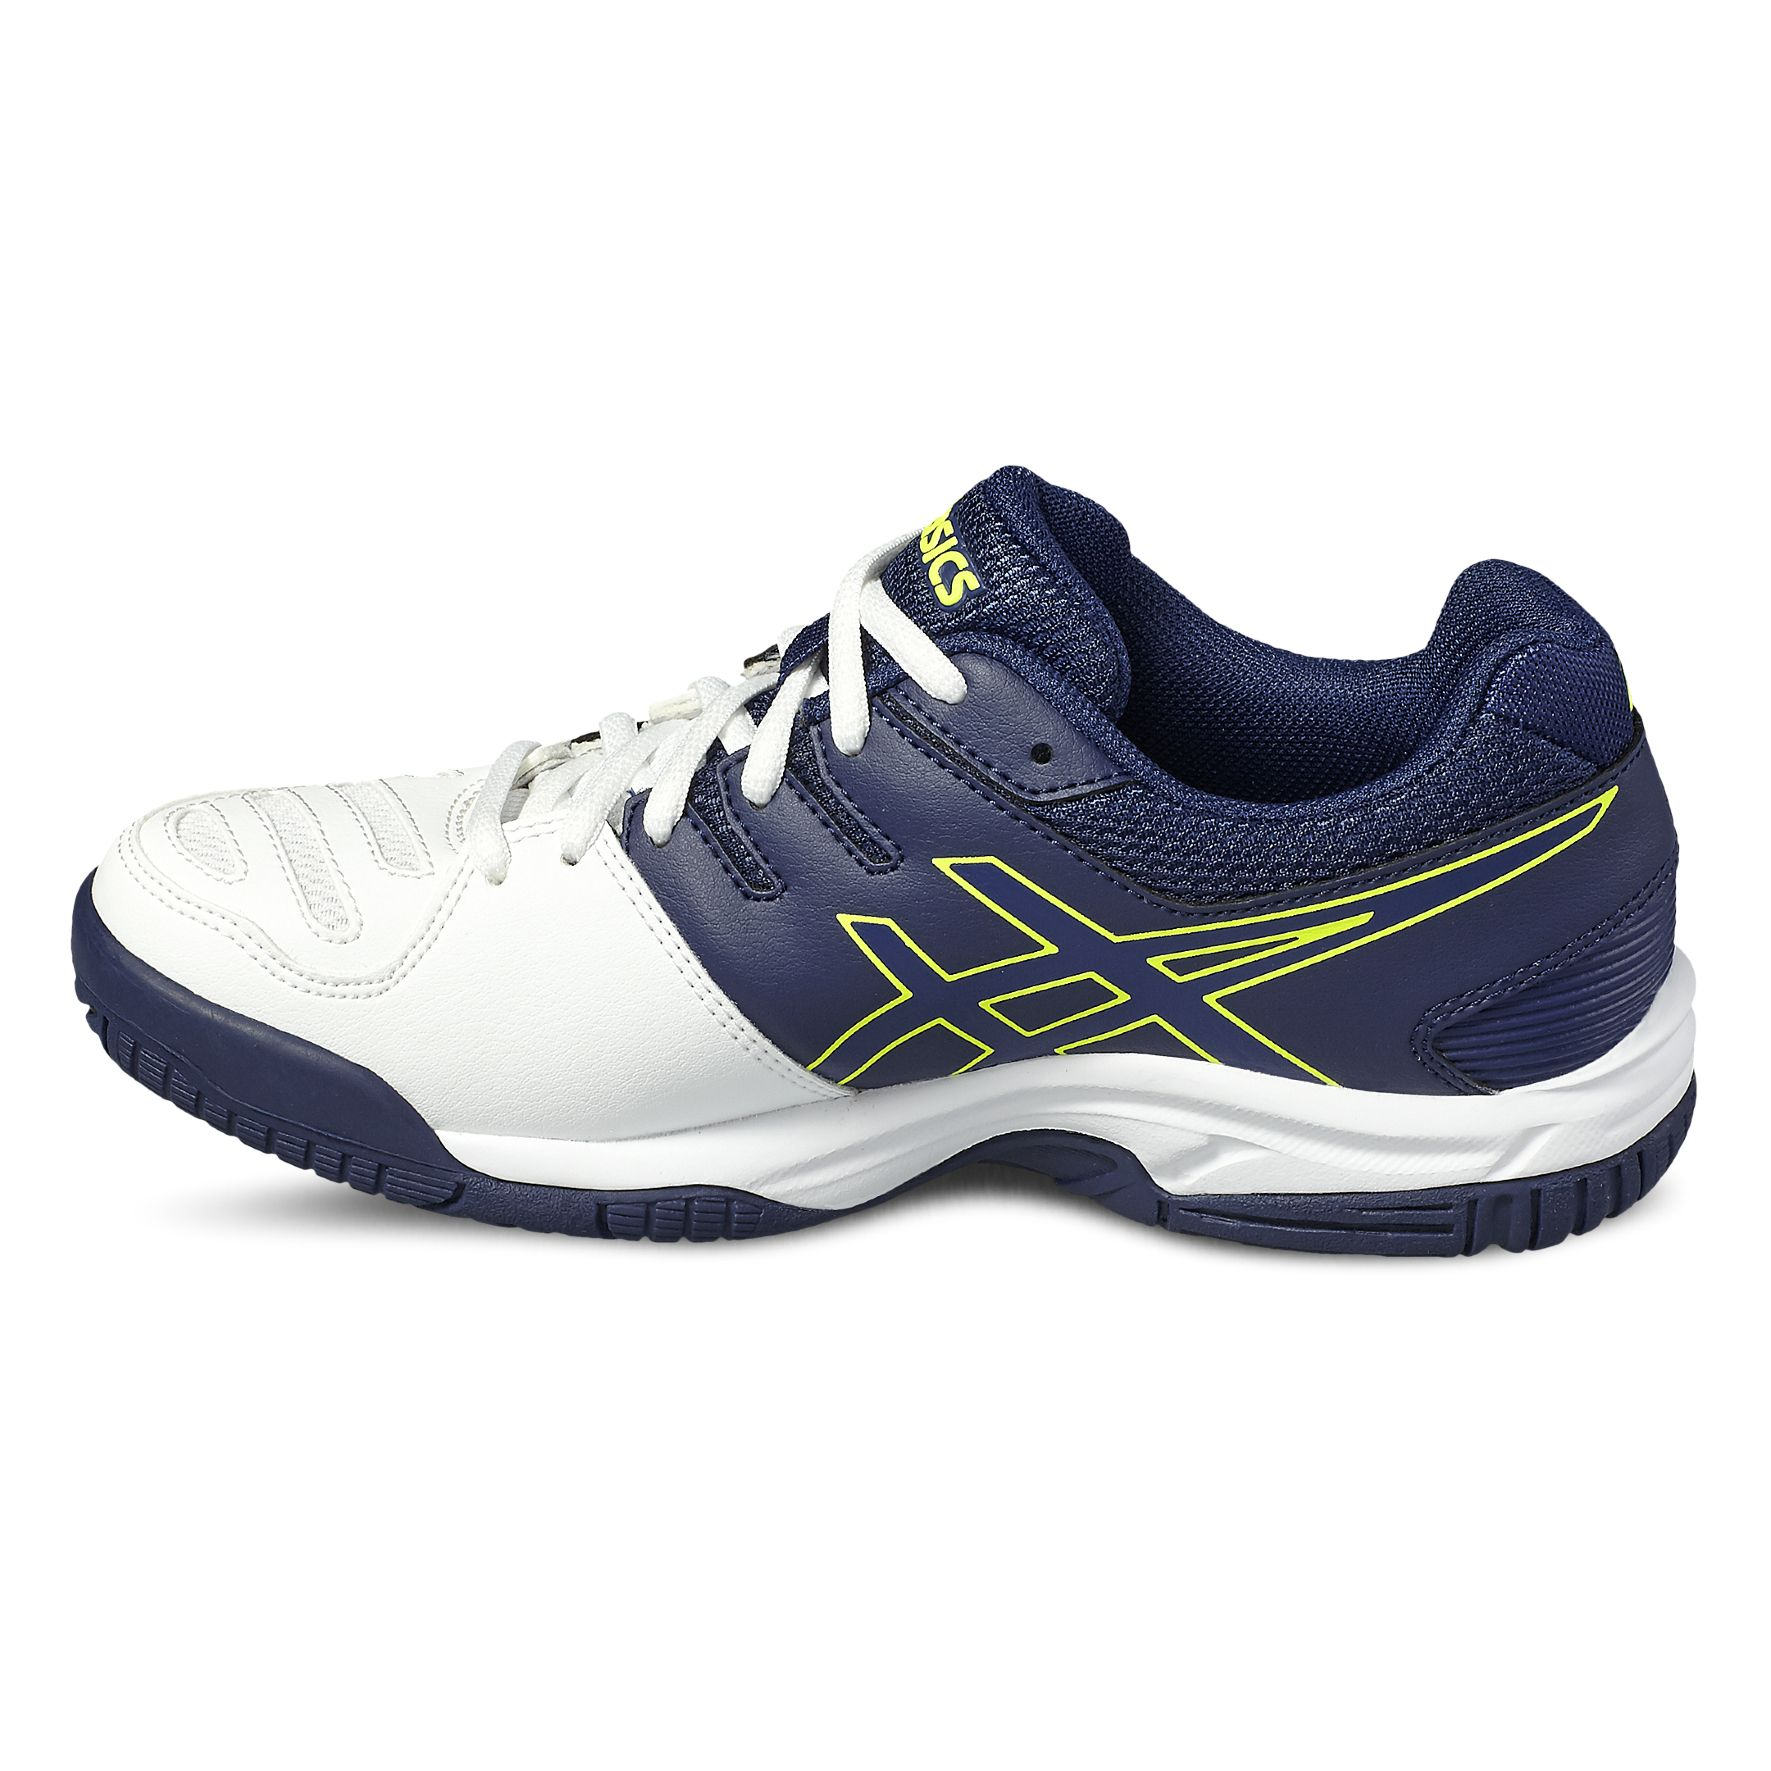 3 besides Asics Gelgame 5 Gs Boys Tennis Shoes additionally Speedo Endurance Solid Brief further Nike Sb Zoom Air Paul Rodriguez Low in addition  on golf gifts for boys